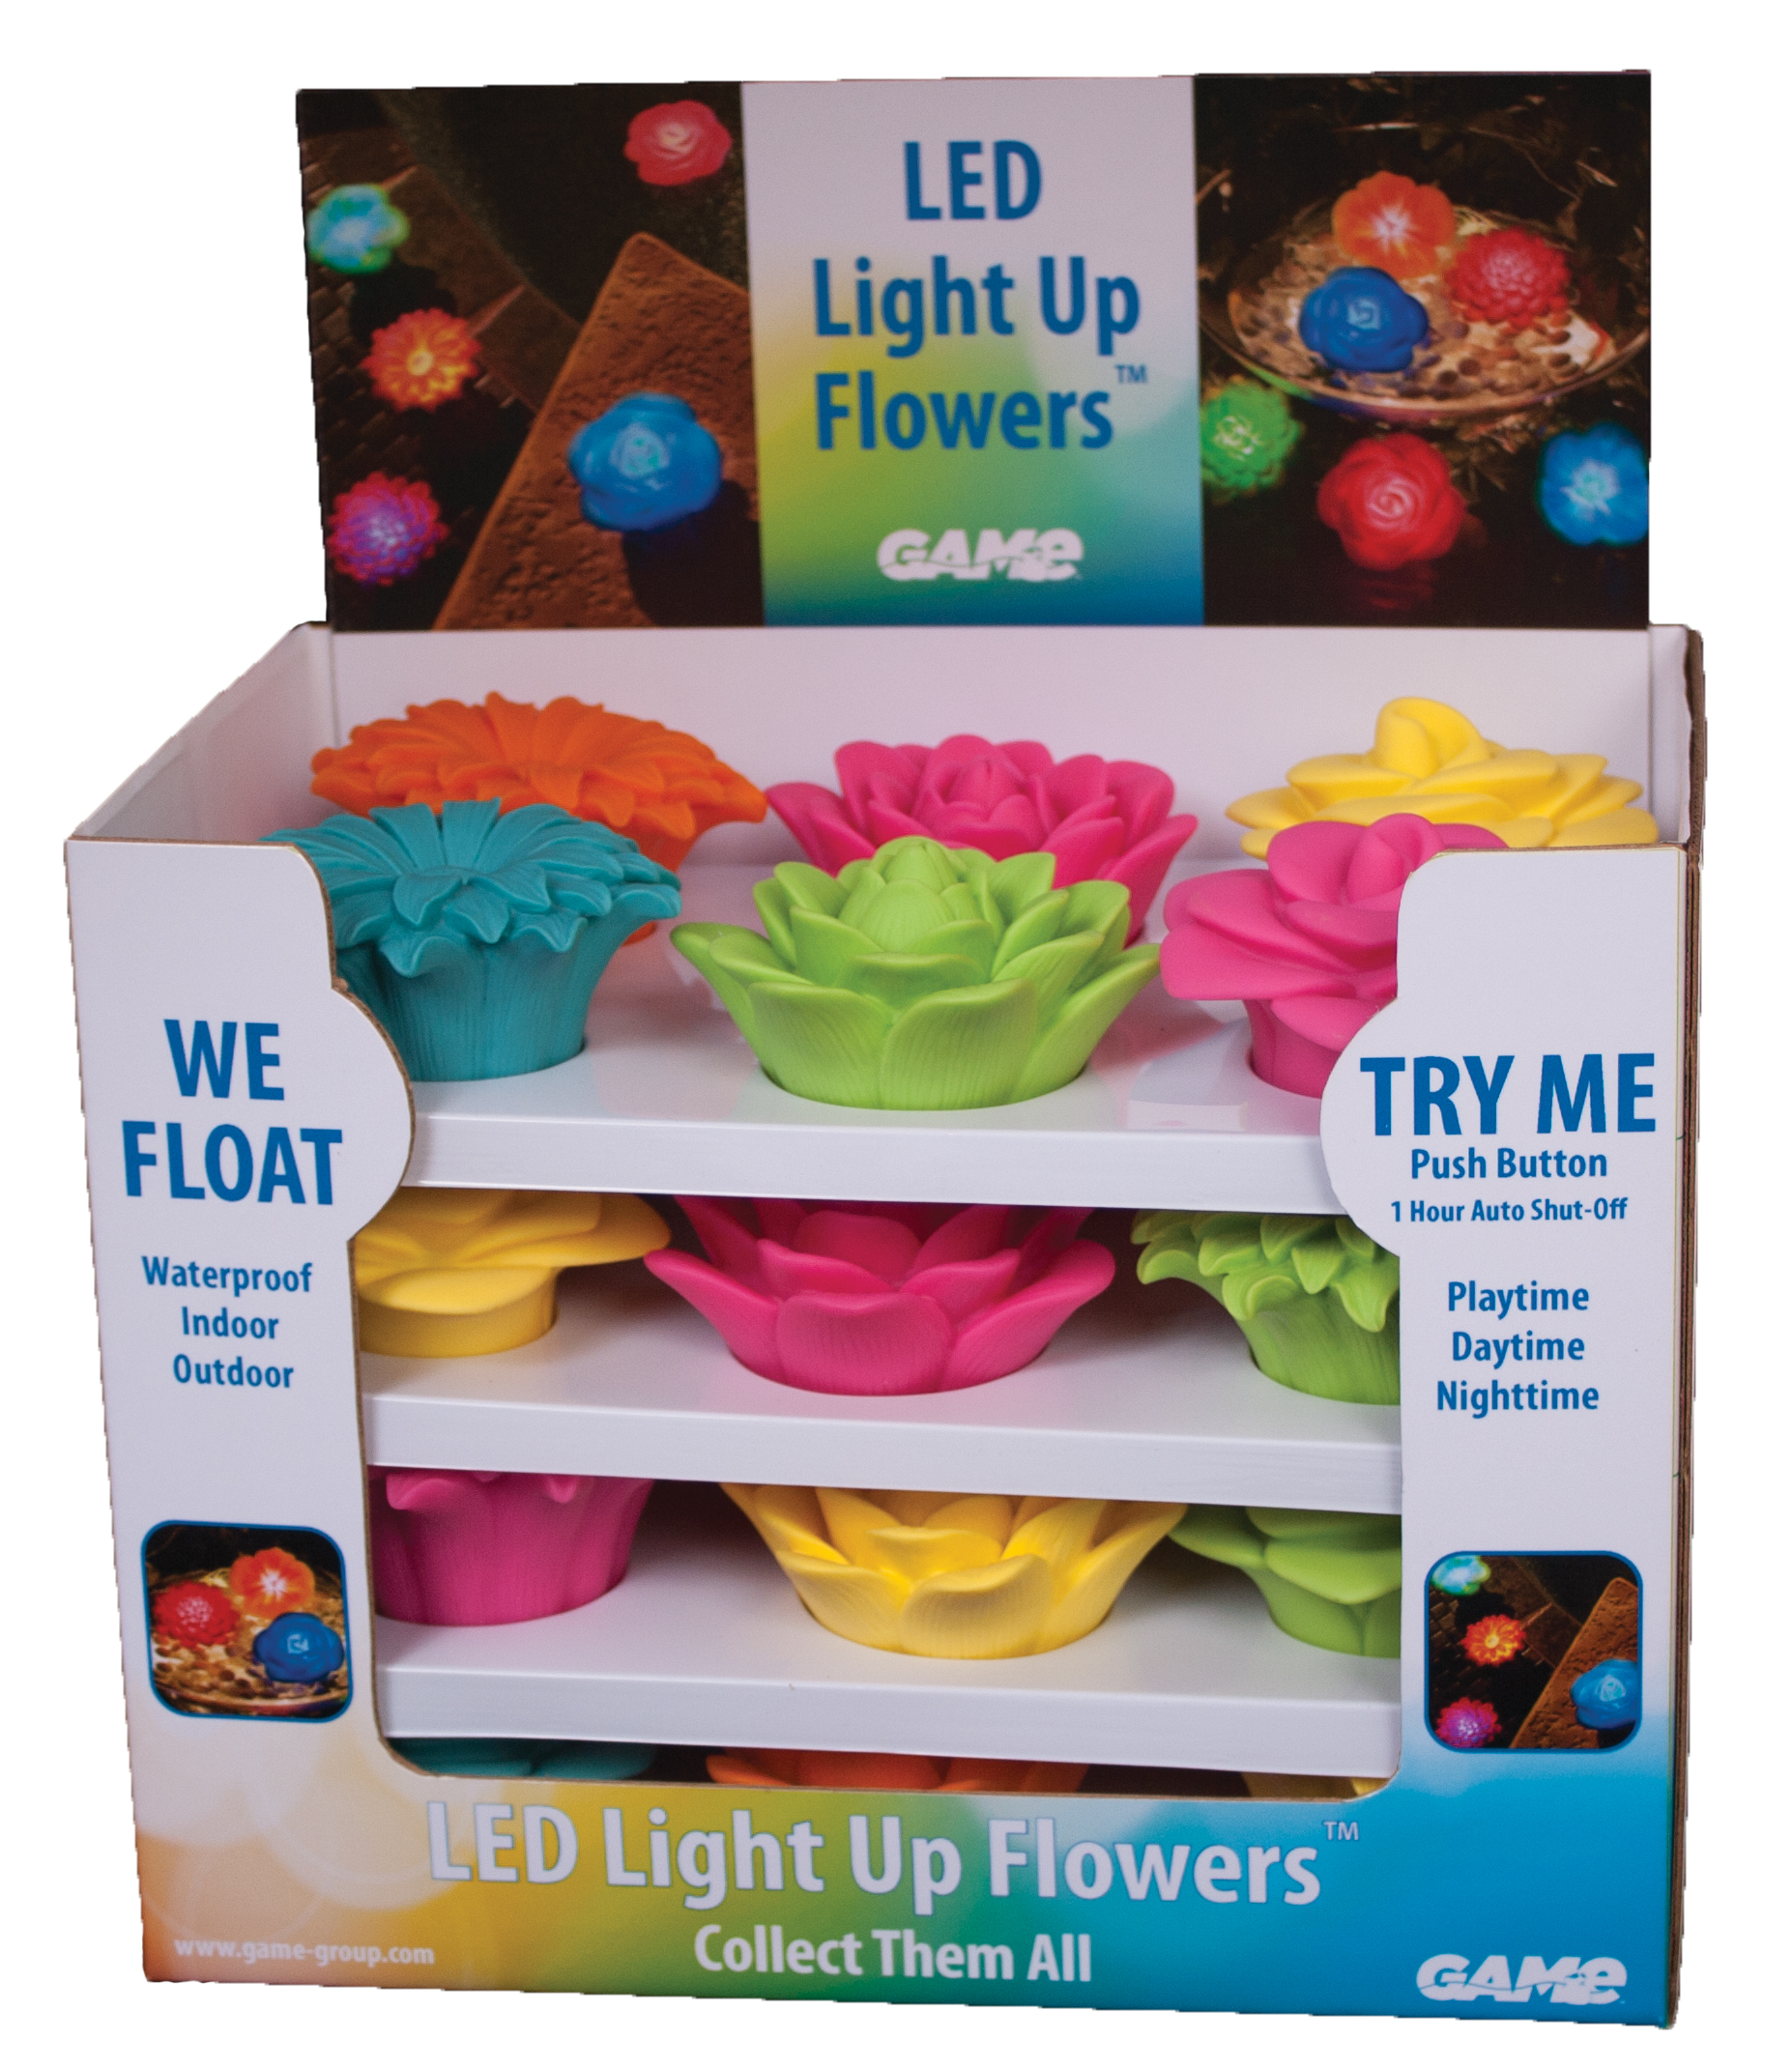 LED LIGHT UP FLOWERS - GAME Products